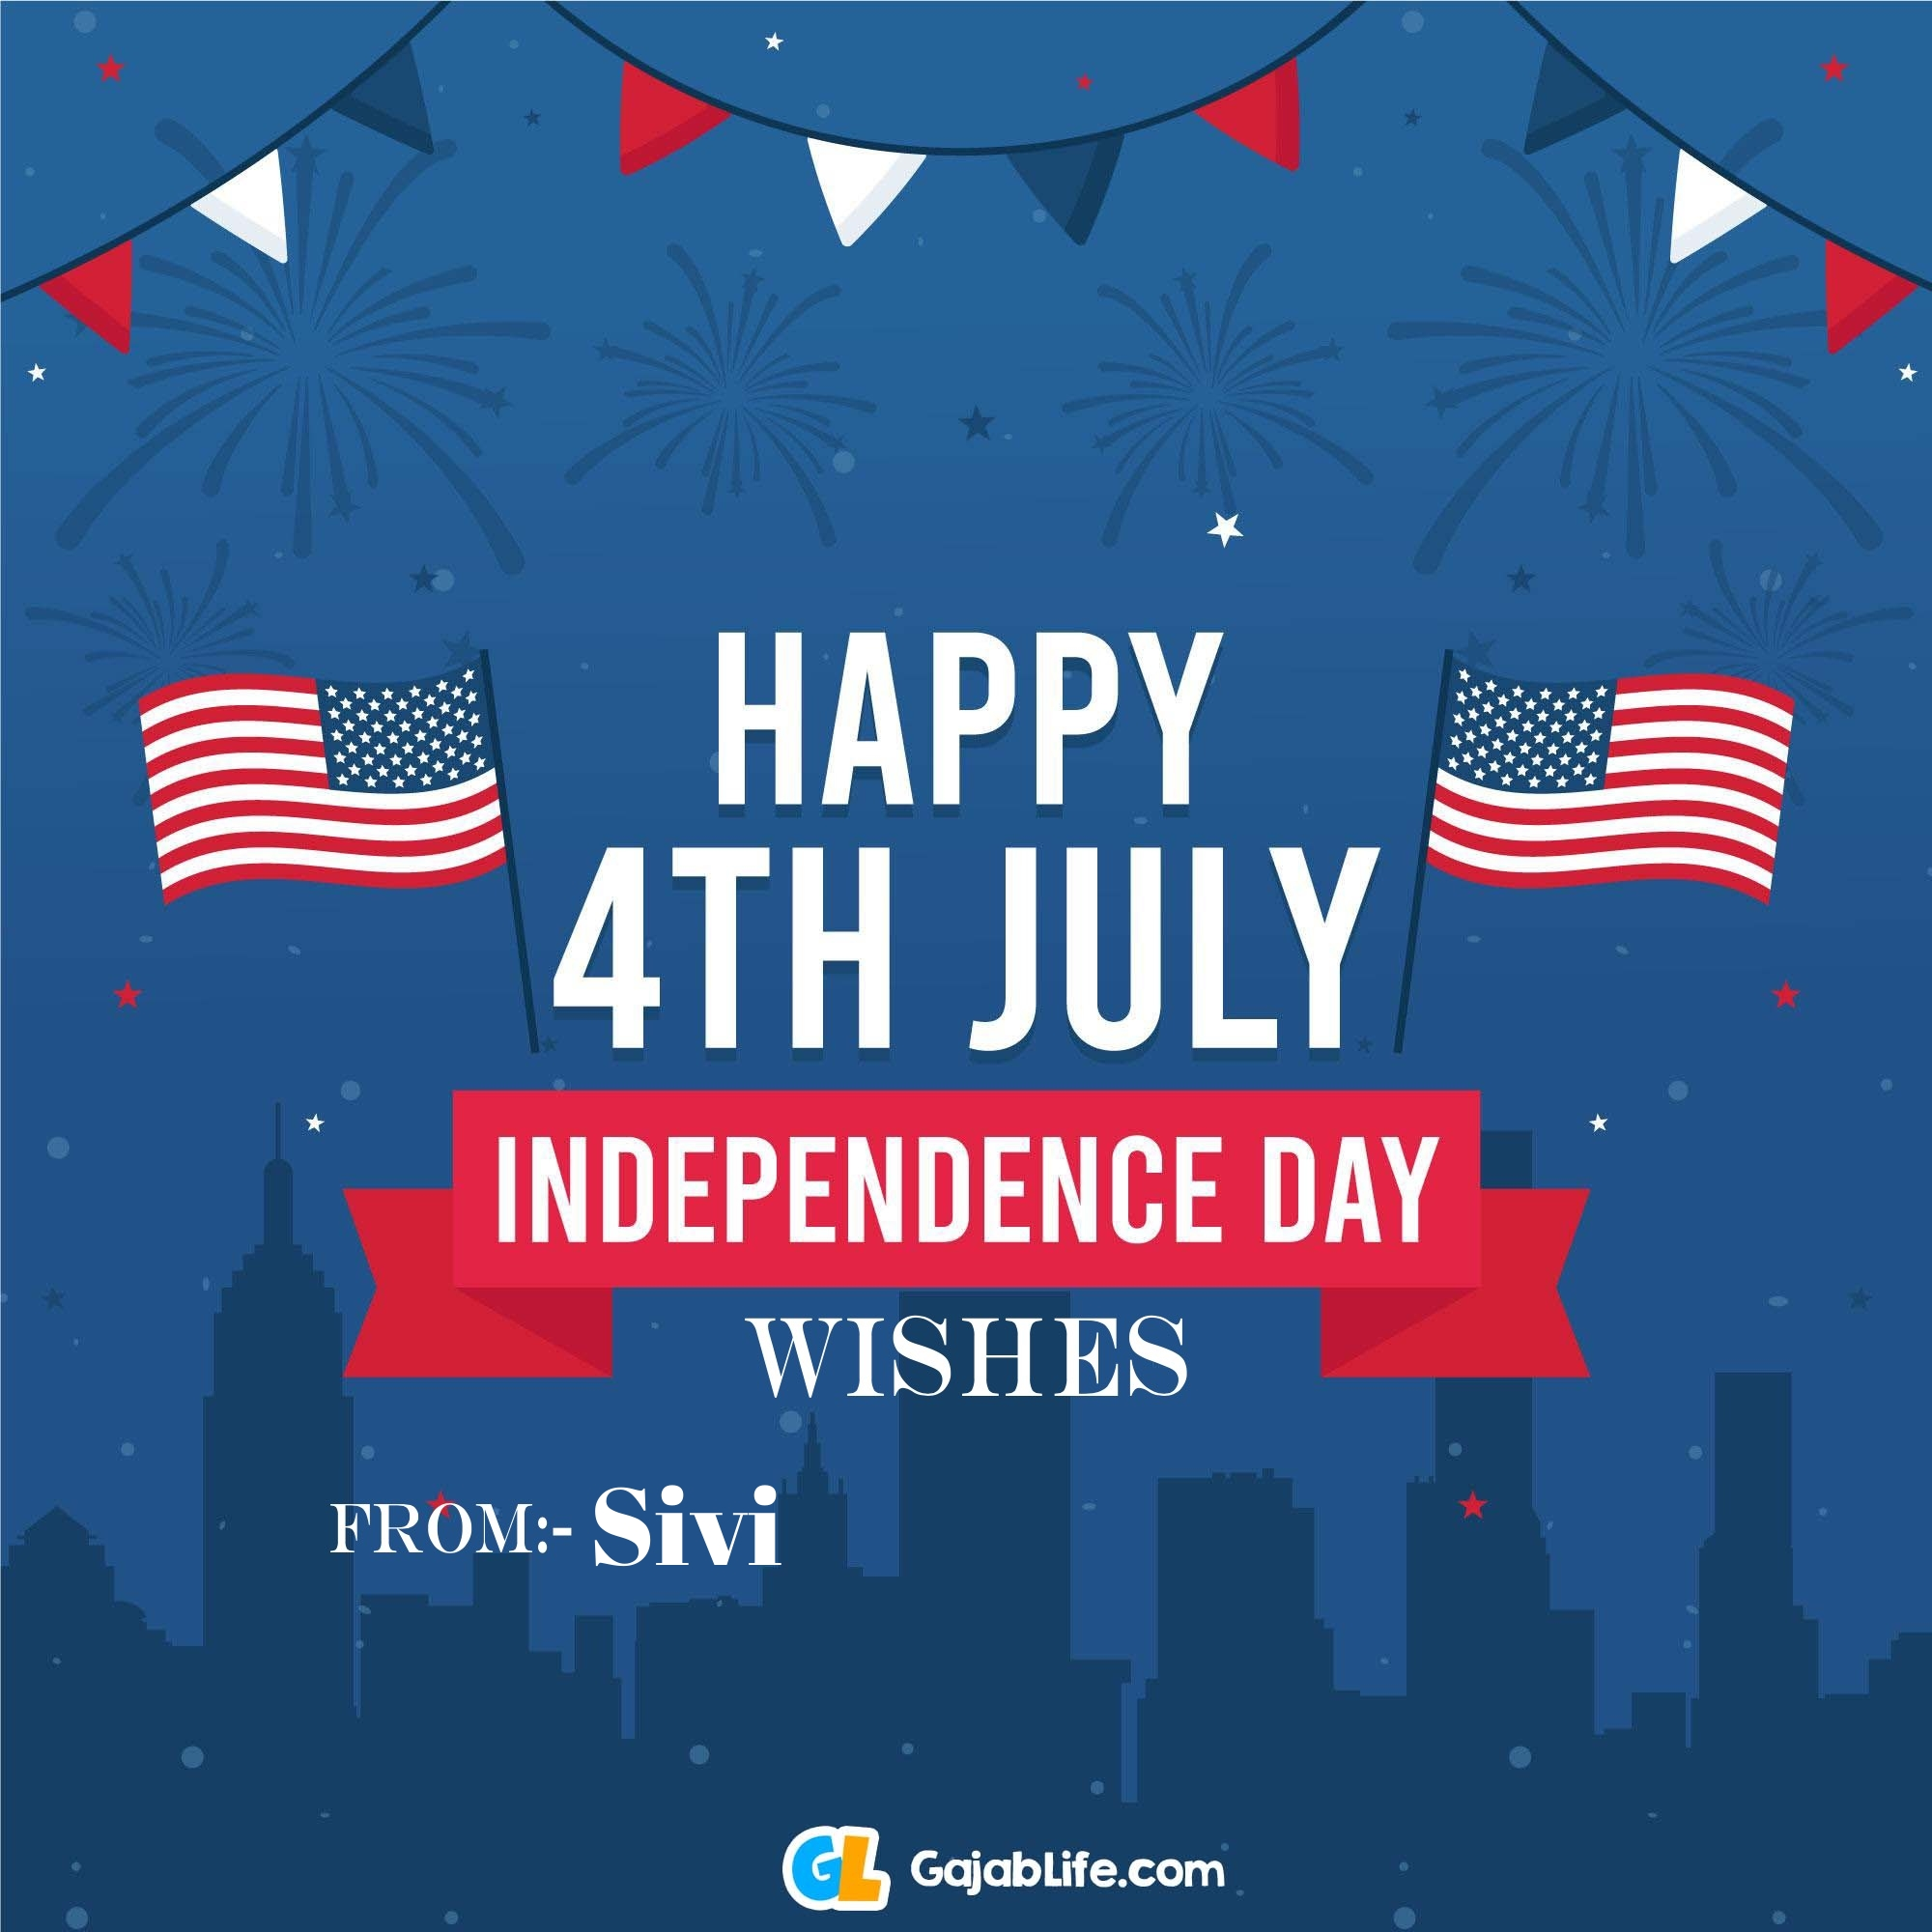 Sivi happy independence day united states of america images